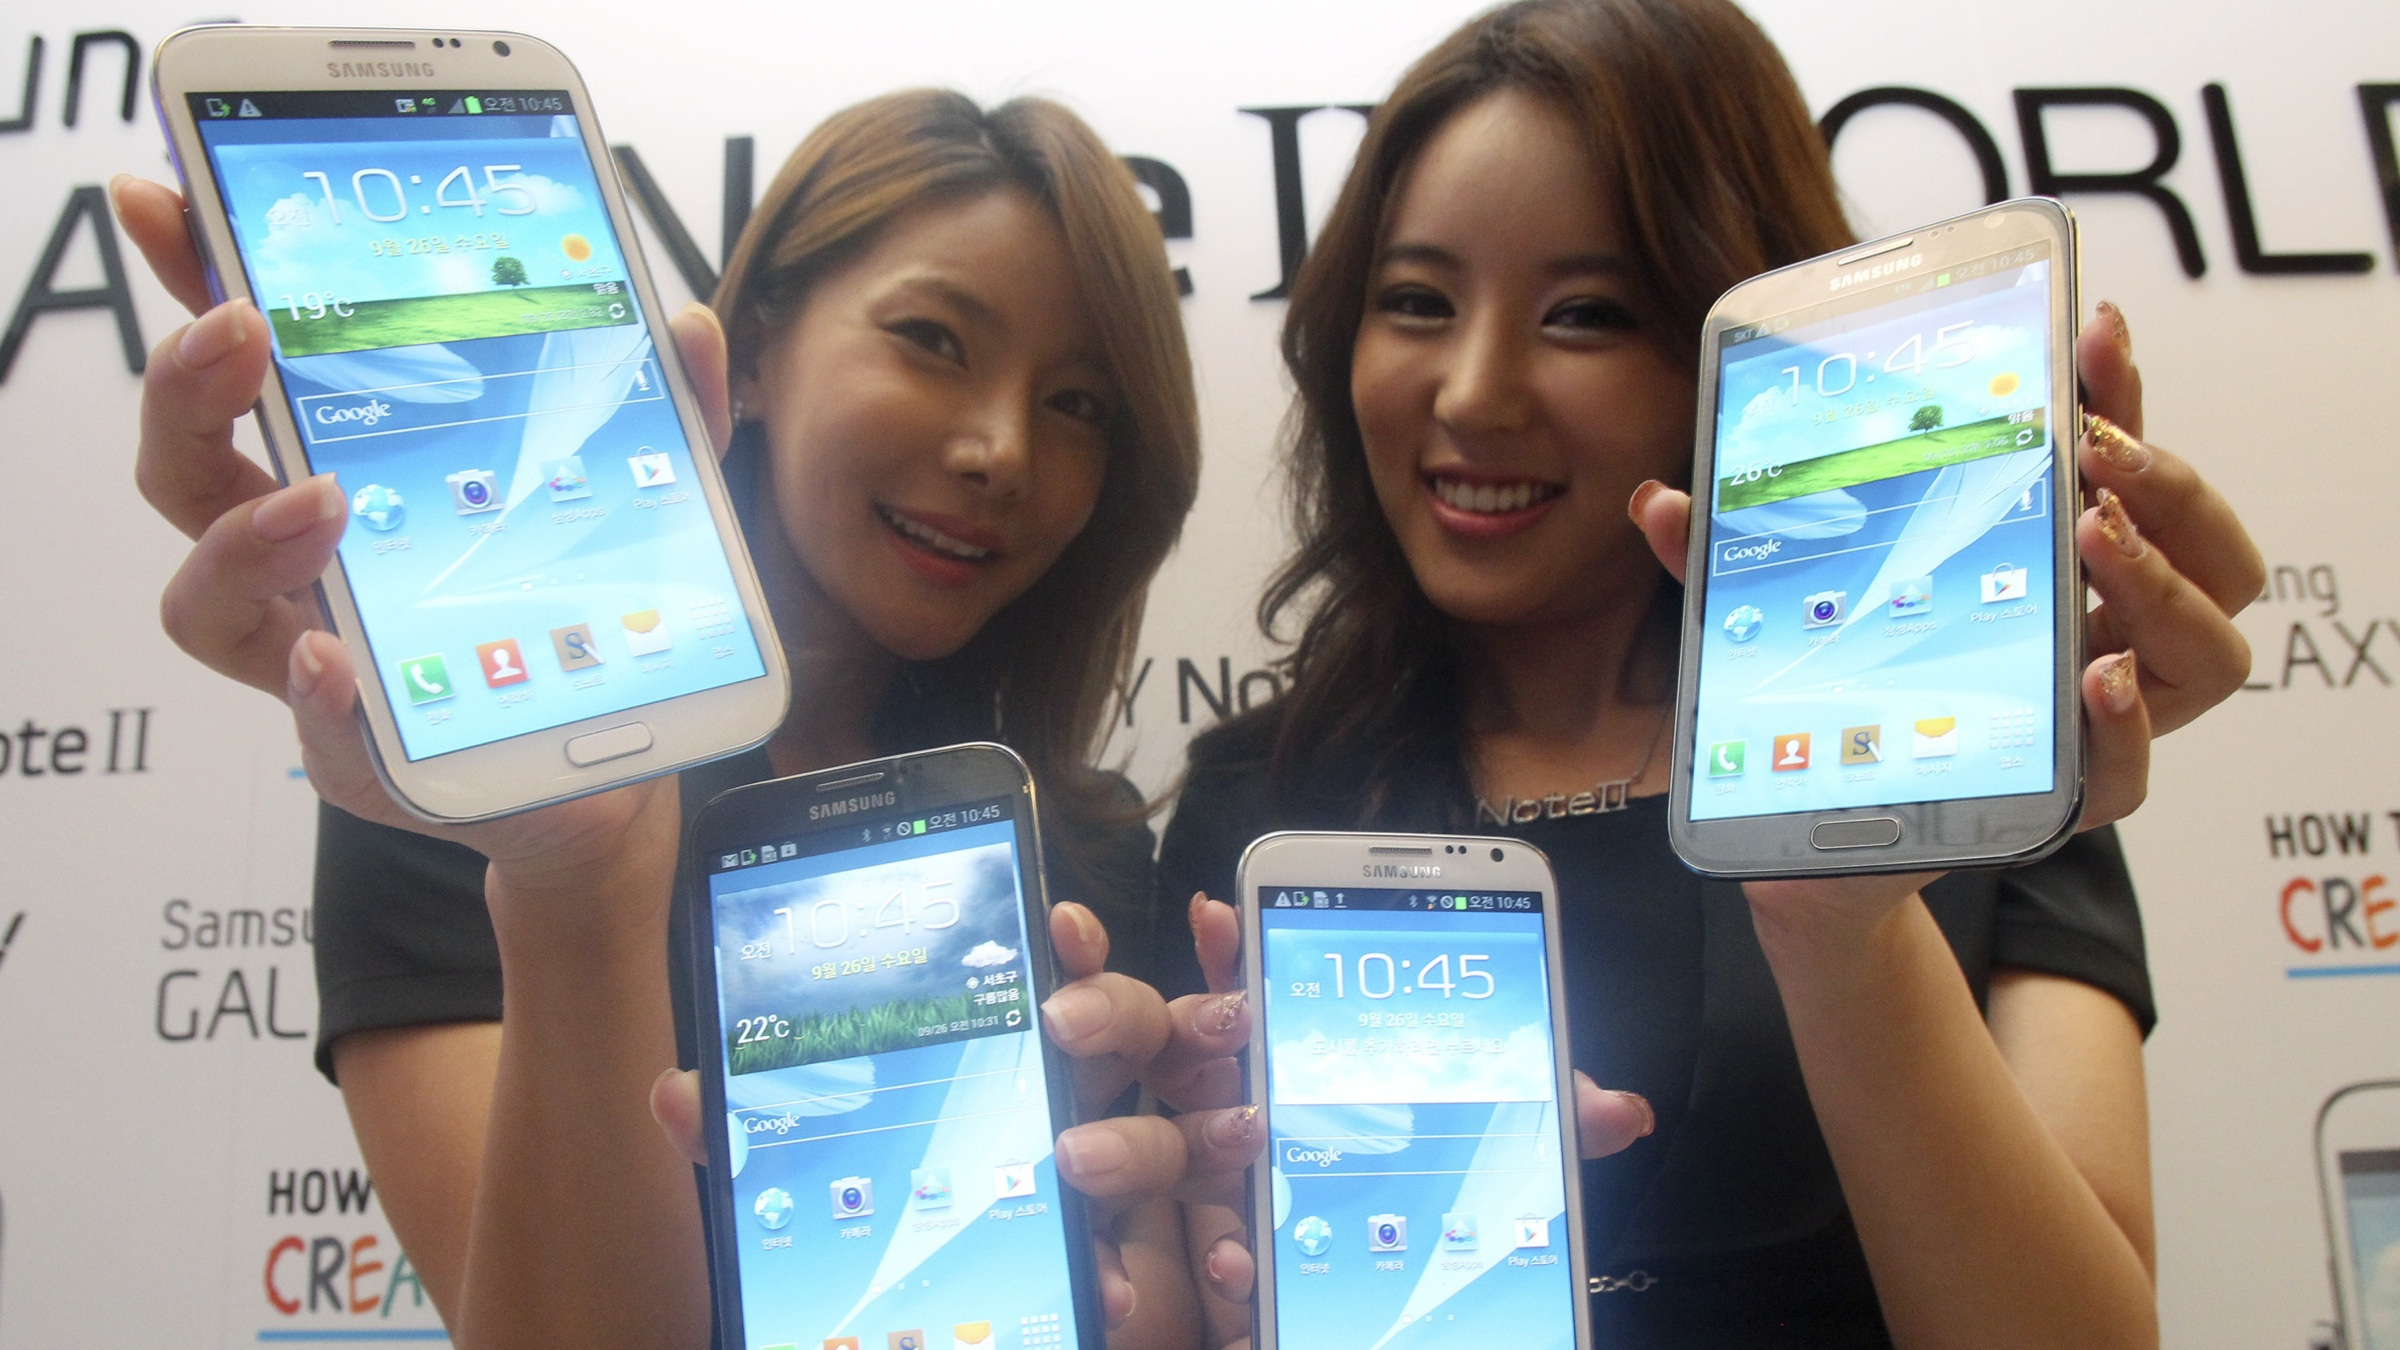 Models hold Samsung Electronics' Galaxy Note II smartphones during its unveiling ceremony in Seoul, South Korea, Wednesday, Sept. 26, 2102. The Galaxy Note II , which runs on Android 4.1 with 1.6 GHz and its goes on sale in the domestic market from Wednesday, Sept. 26 (AP Photo/Ahn Young-joon)